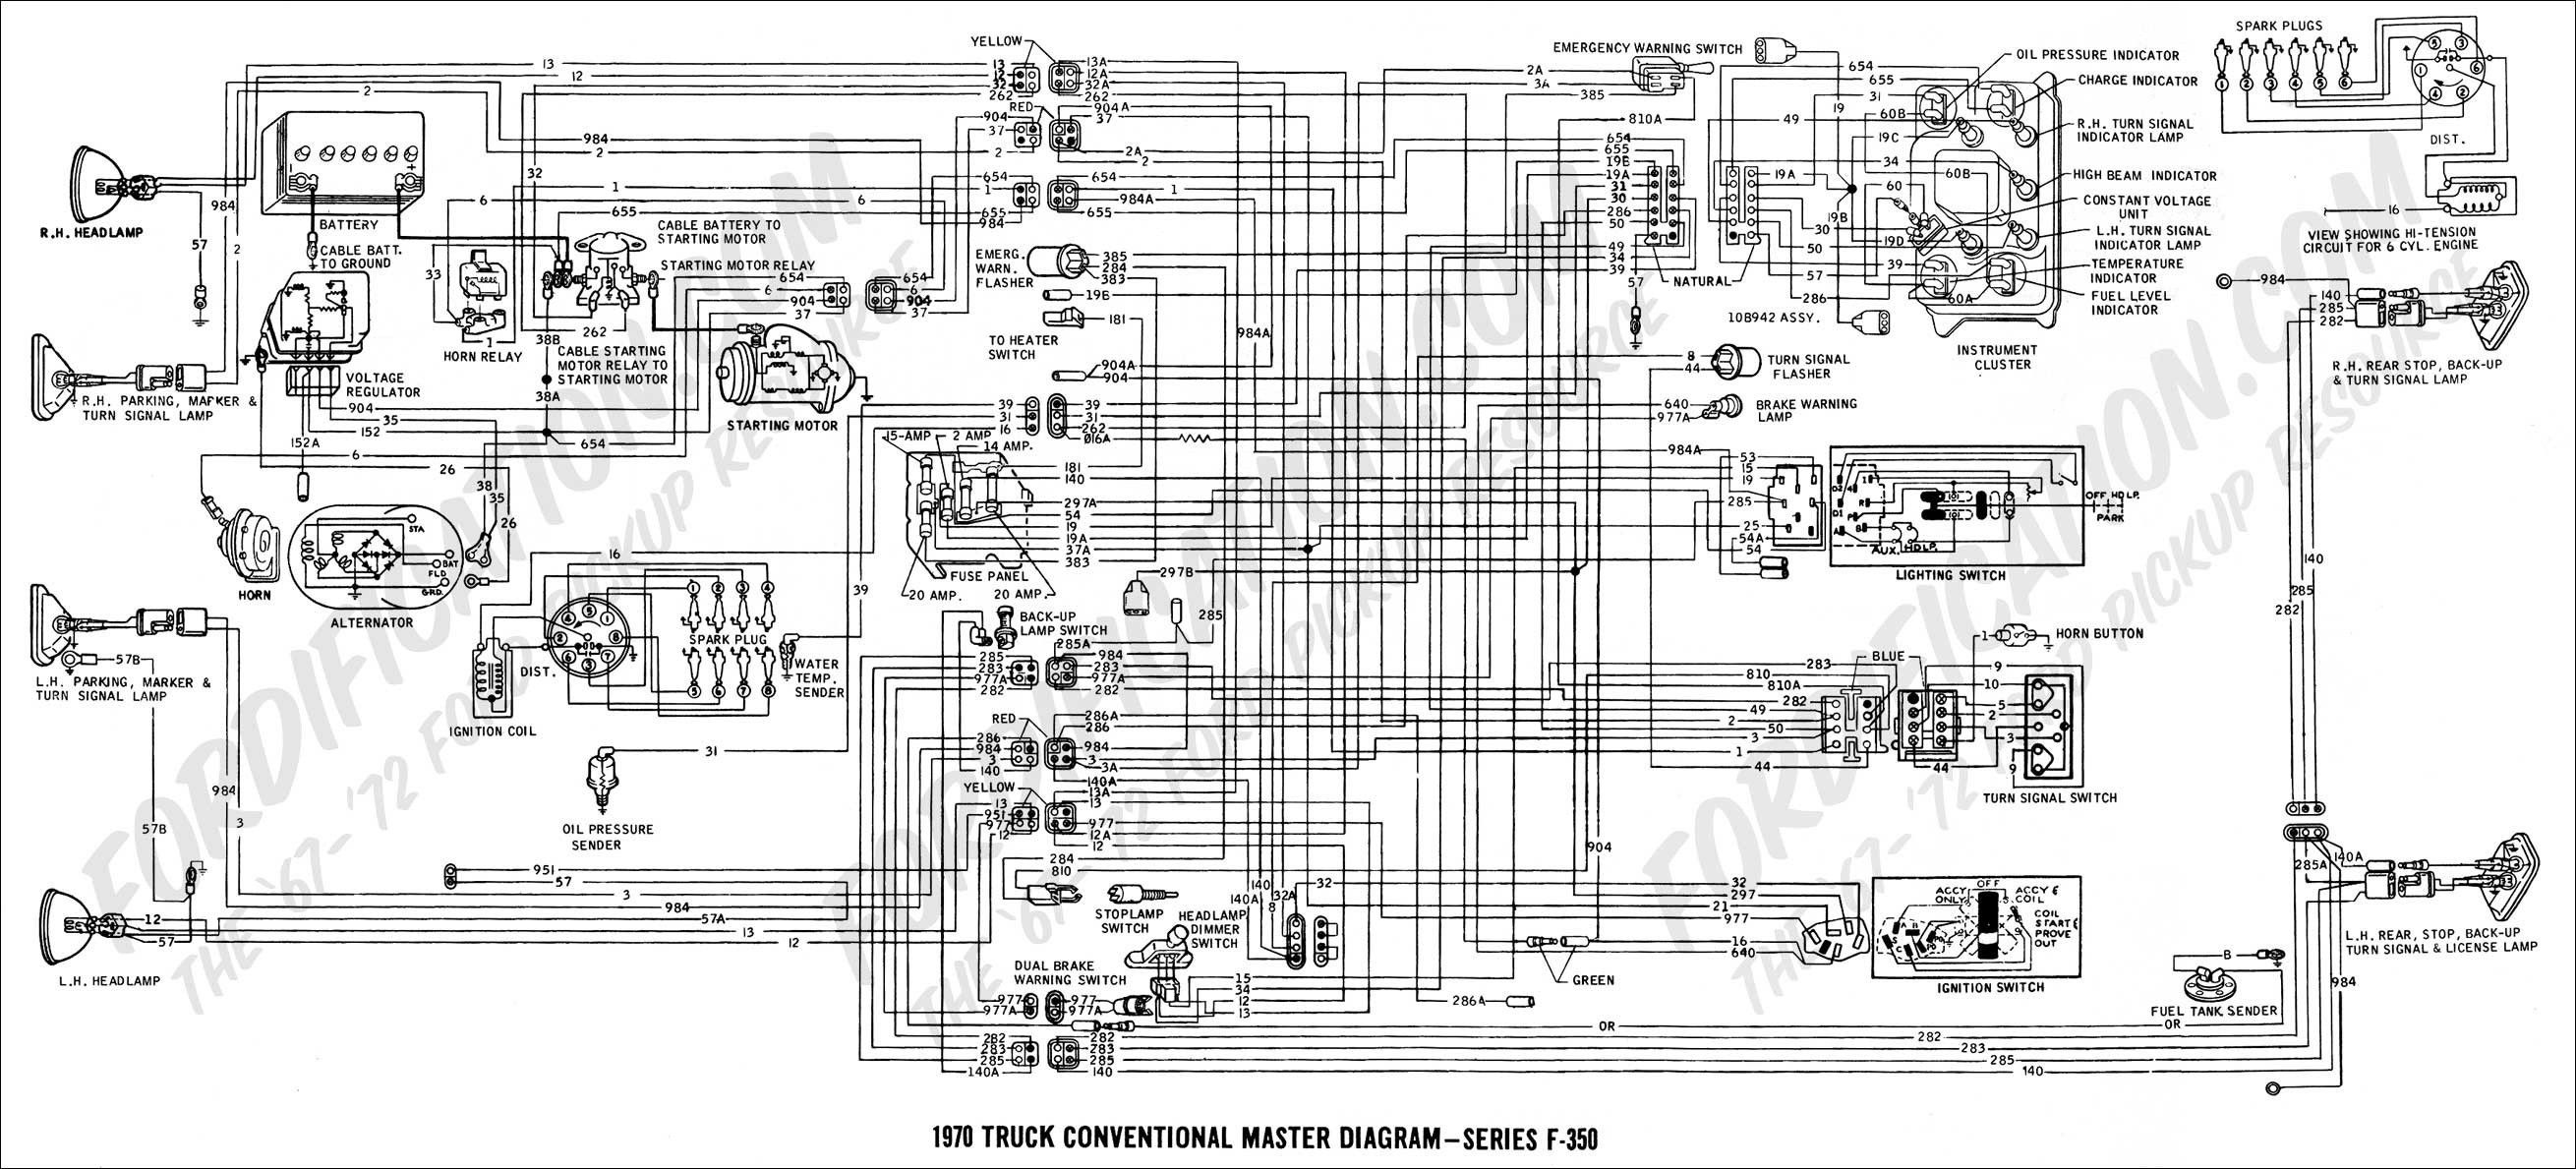 image result for 2006 6 0 powerstroke engine diagram [ 2620 x 1189 Pixel ]